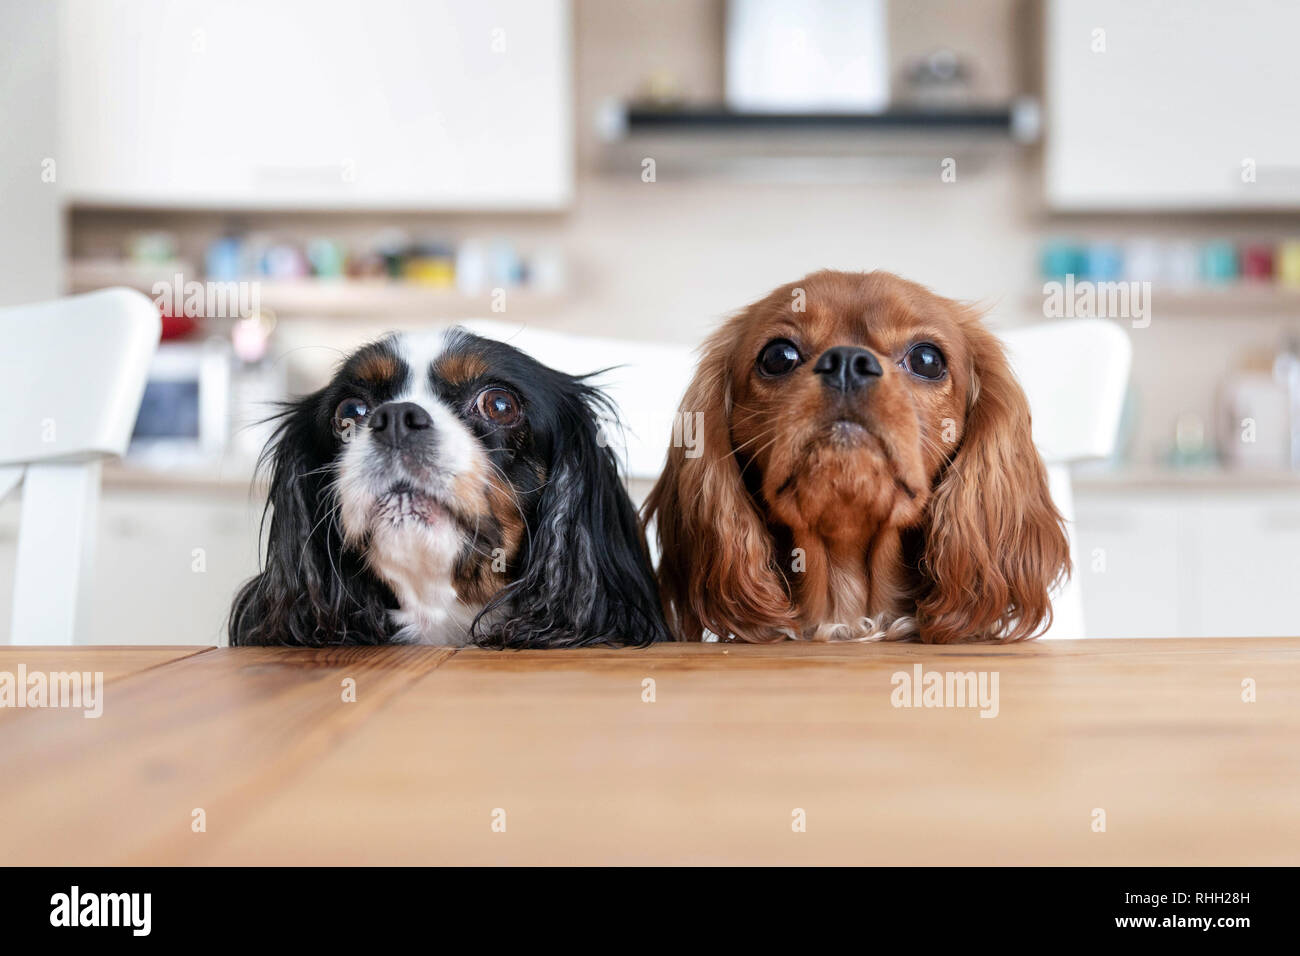 Two dogs sitting behind the kitchen table waiting for food Stock Photo